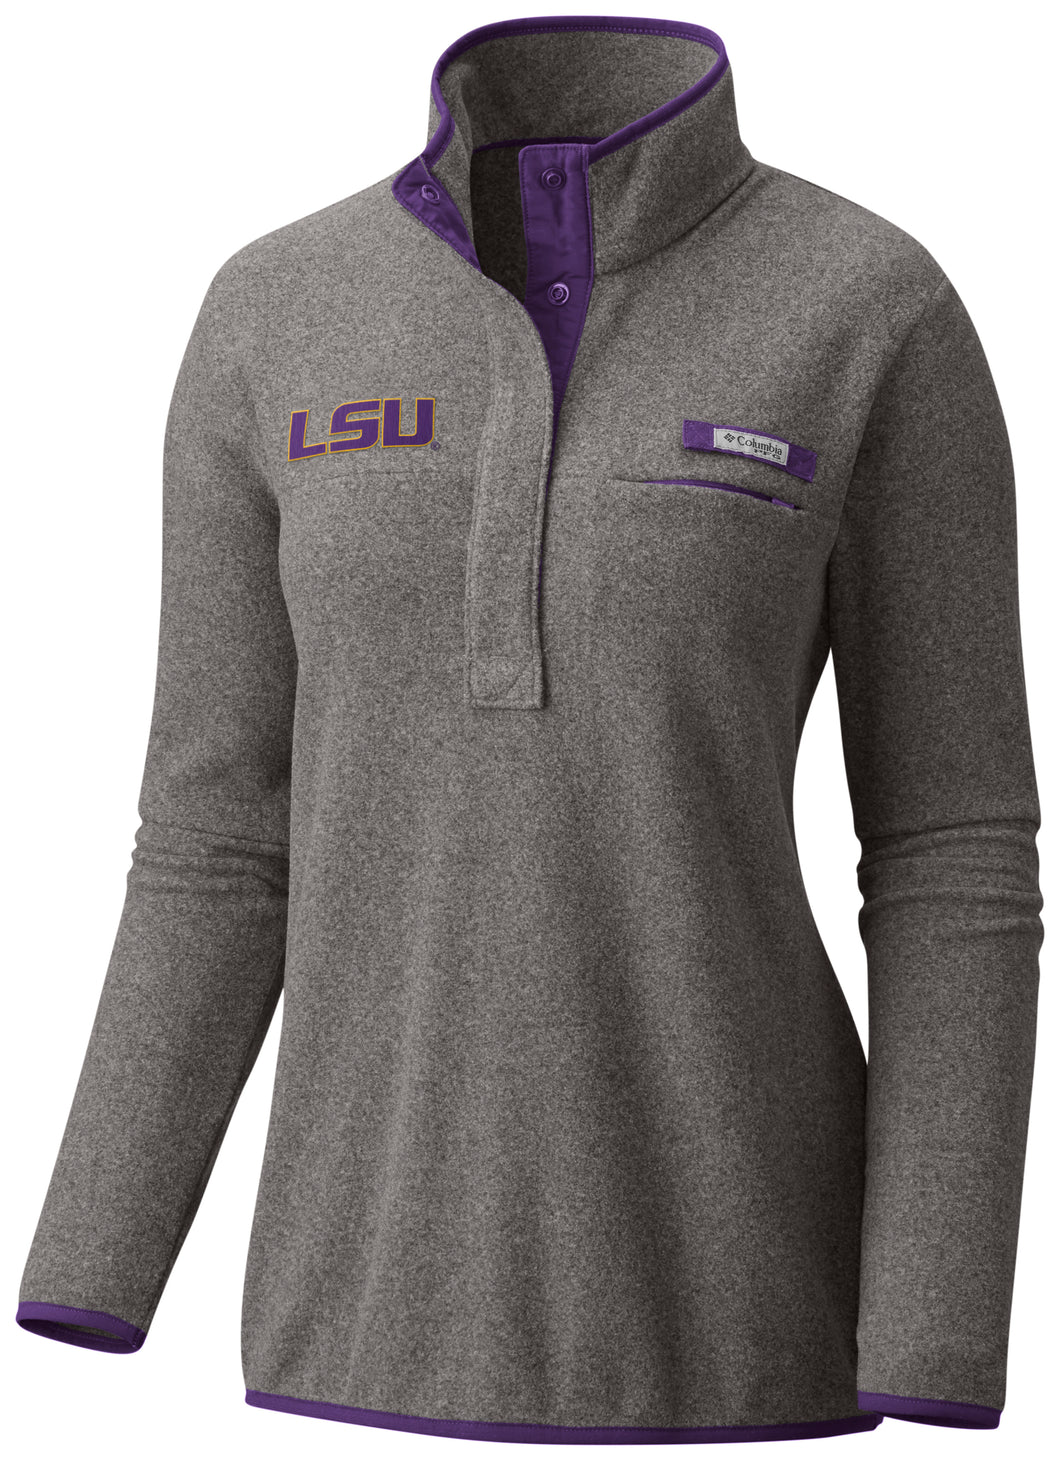 Women's LSU Columbia half-zip grey fleece